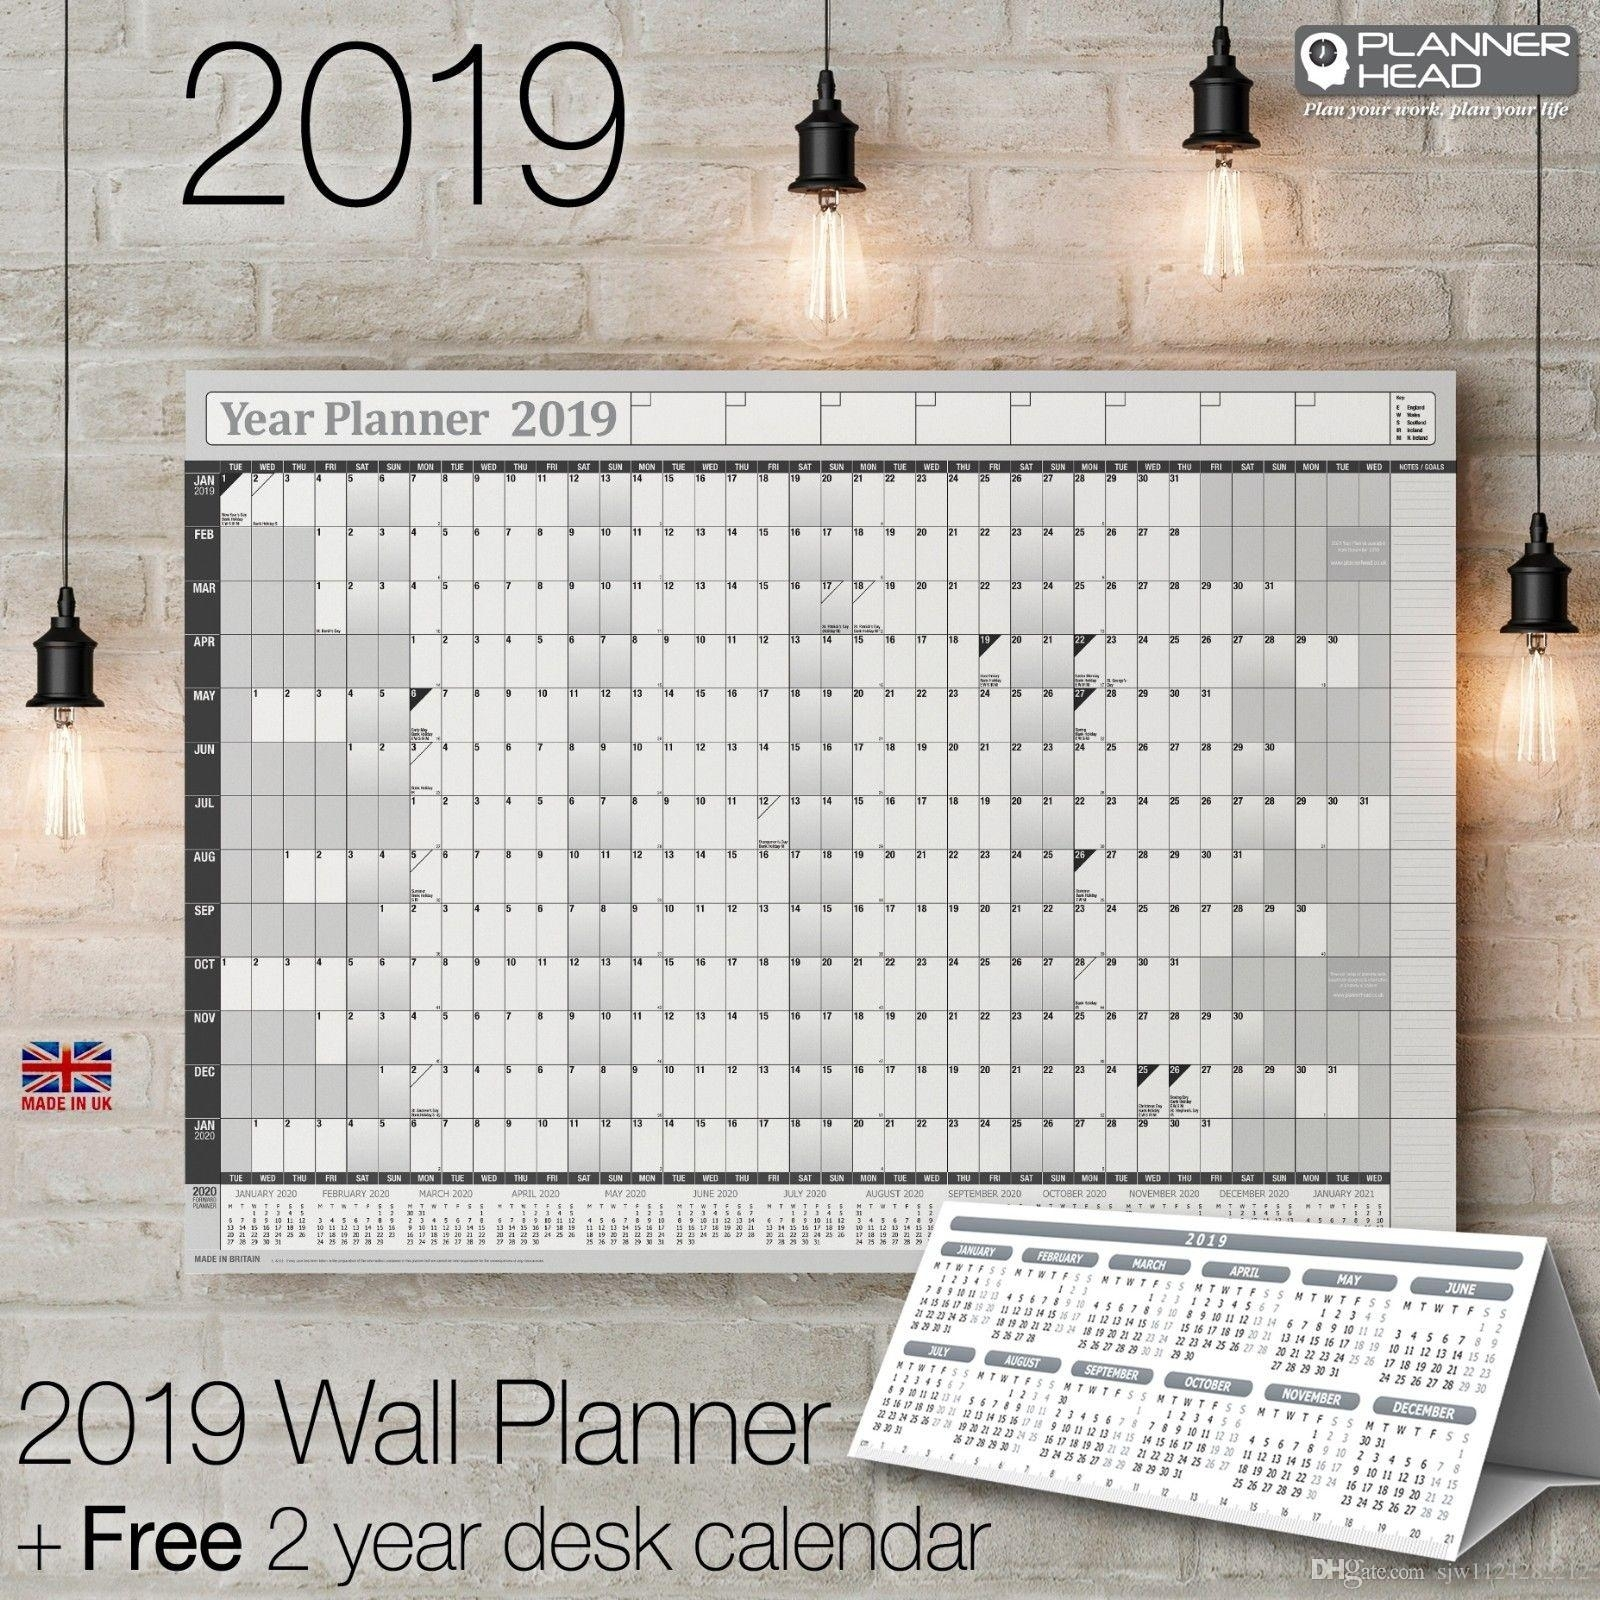 2019 2019 Yearly Planner Annual Wall Chart Year Planner & A Free Wall Chart  2 Year Desk Calendar From Sjw1124282212, $20.11 | Dhgate